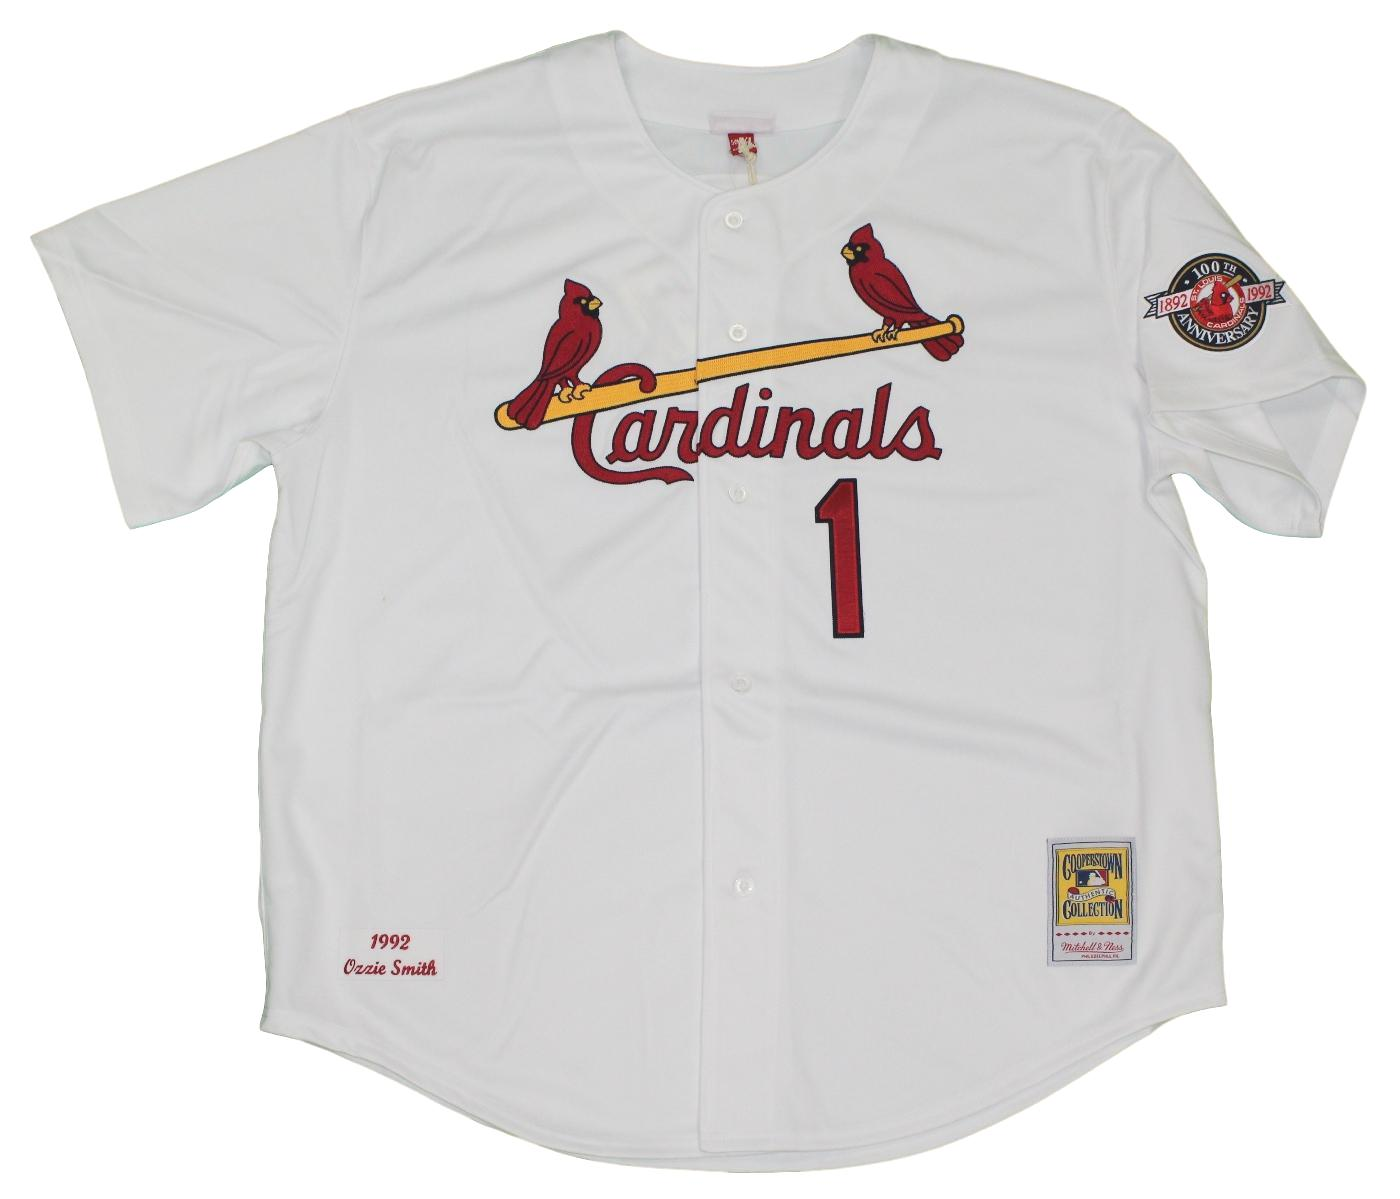 589968a27 ... baby blue pullover 1980s 4afbc edb70  shop ozzie smith st. louis  cardinals mitchell ness mlb authentic 1992 jersey 2ff4a 6b52a